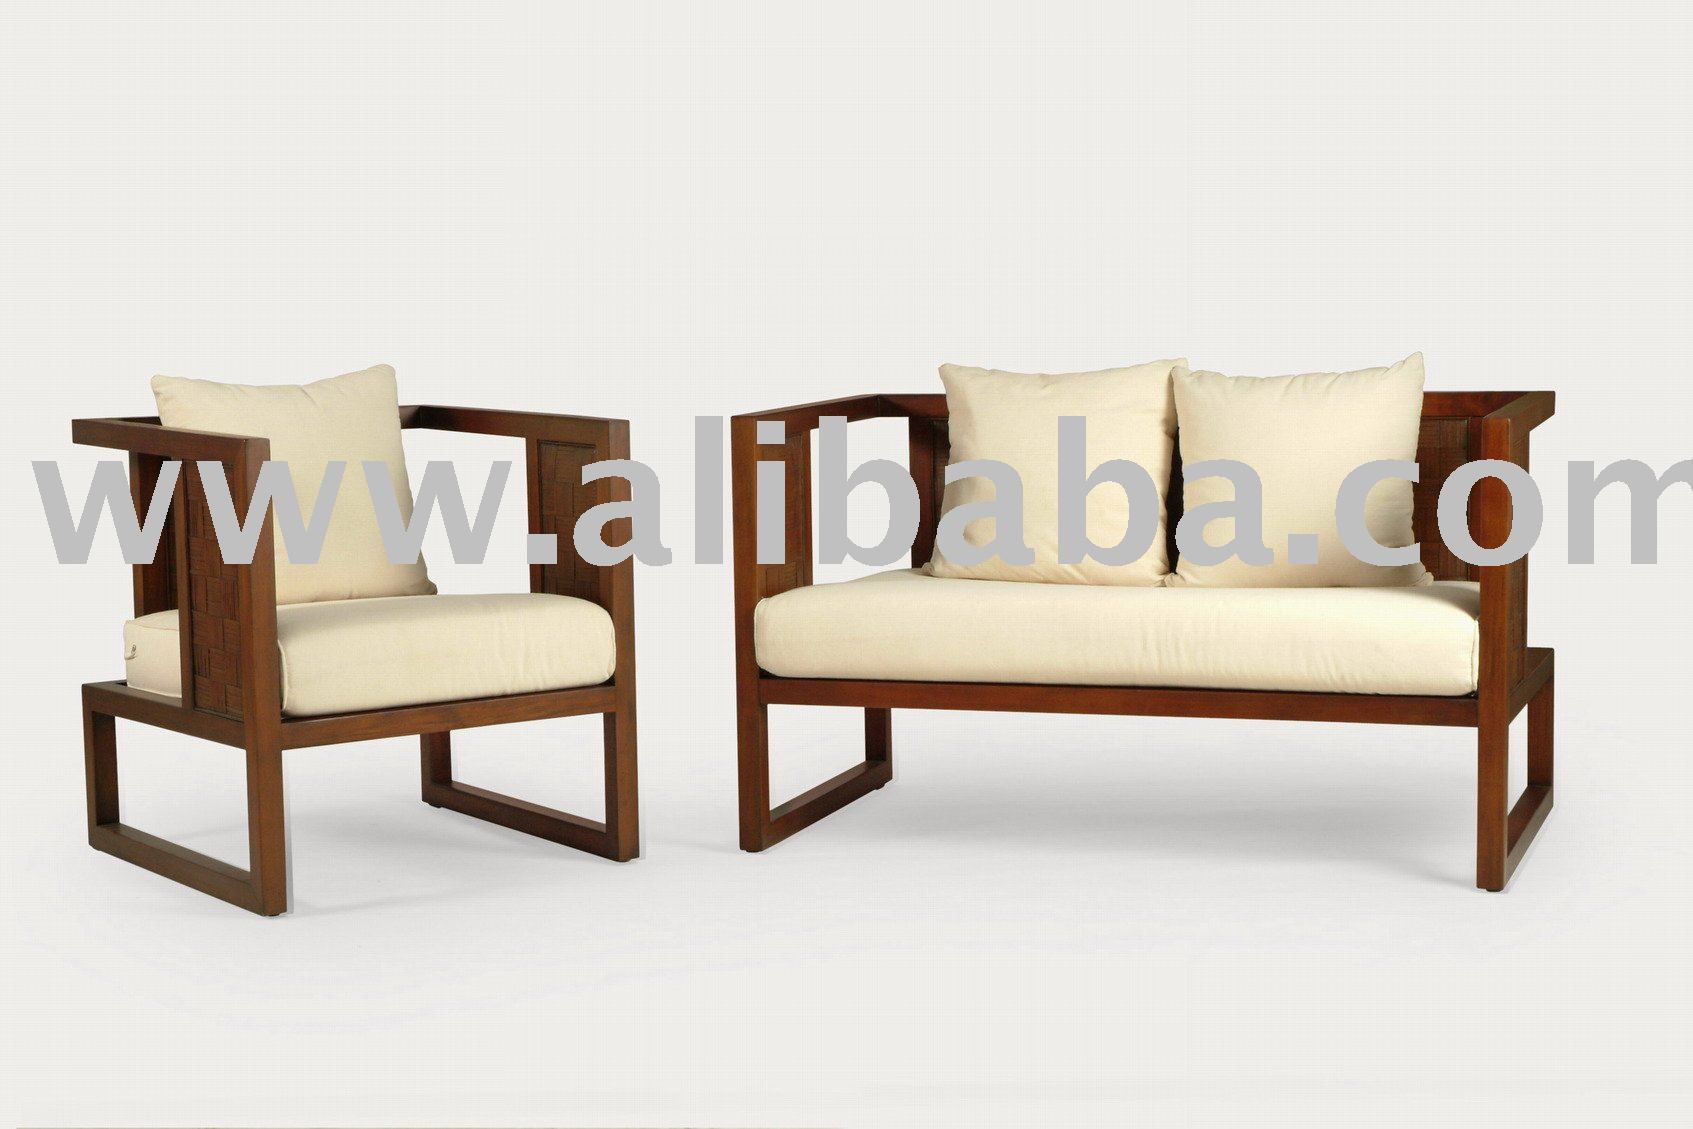 Wood Furniture Mondrian Living Room Set Buy Living Room Sofa Lounge Chair Leather Product On Alibaba throughout Living Rooms Sets For Cheap